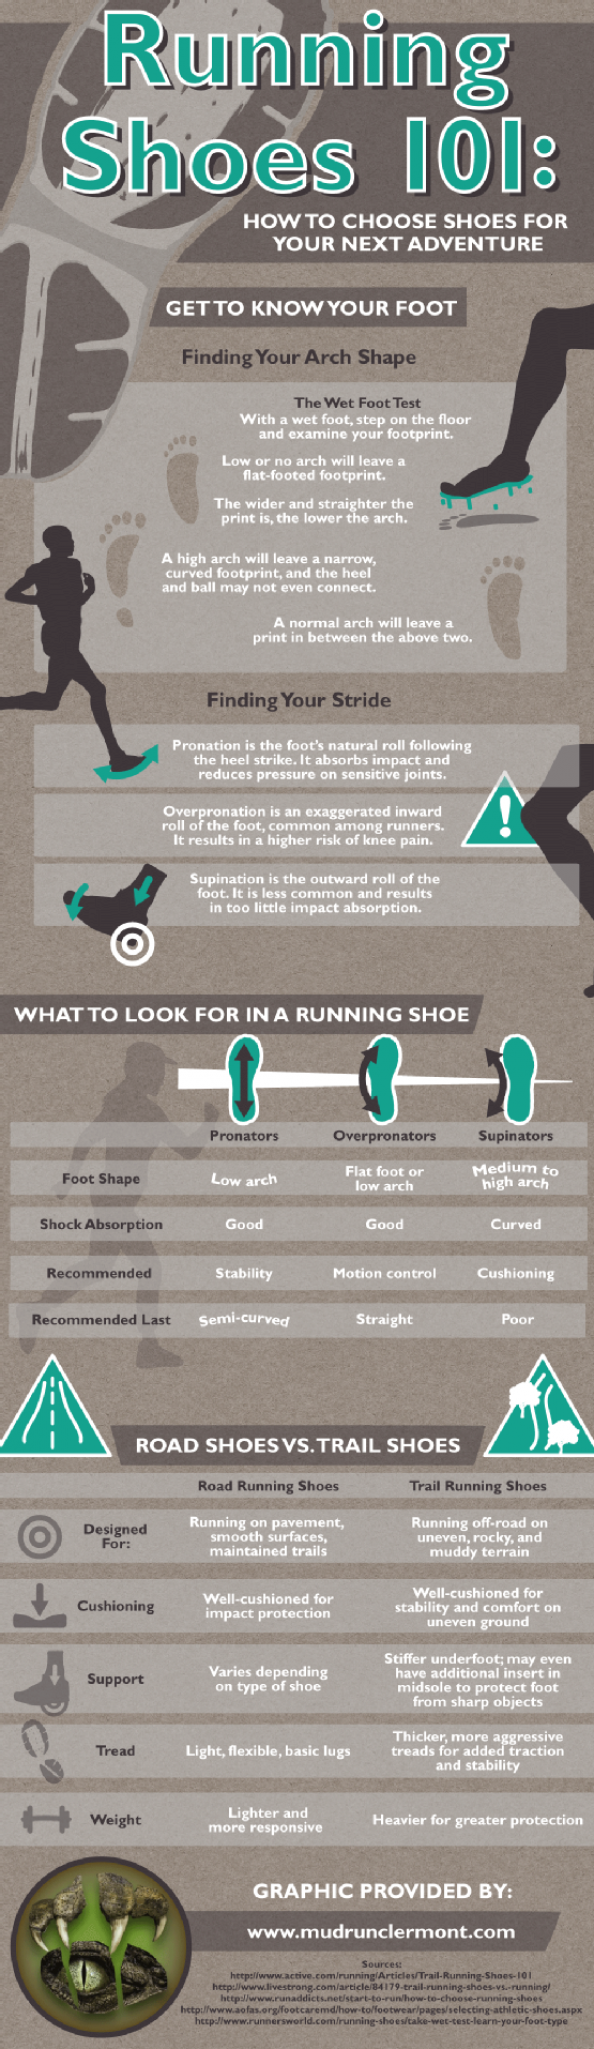 Running Shoes 101: How to Choose Shoes for Your Next Adventure Infographic